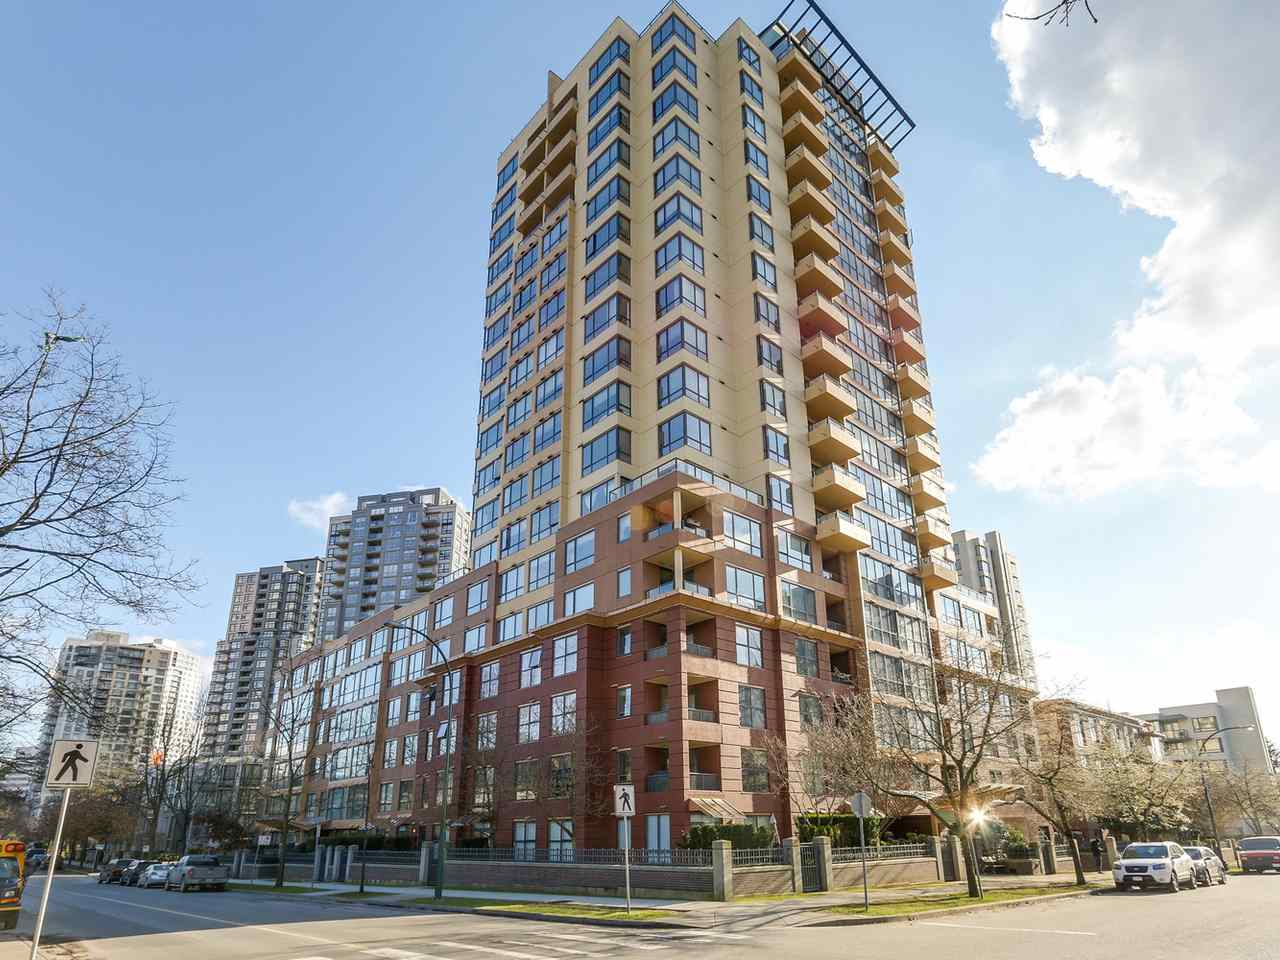 Main Photo: 809 5288 MELBOURNE Street in Vancouver: Collingwood VE Condo for sale (Vancouver East)  : MLS® # R2141801